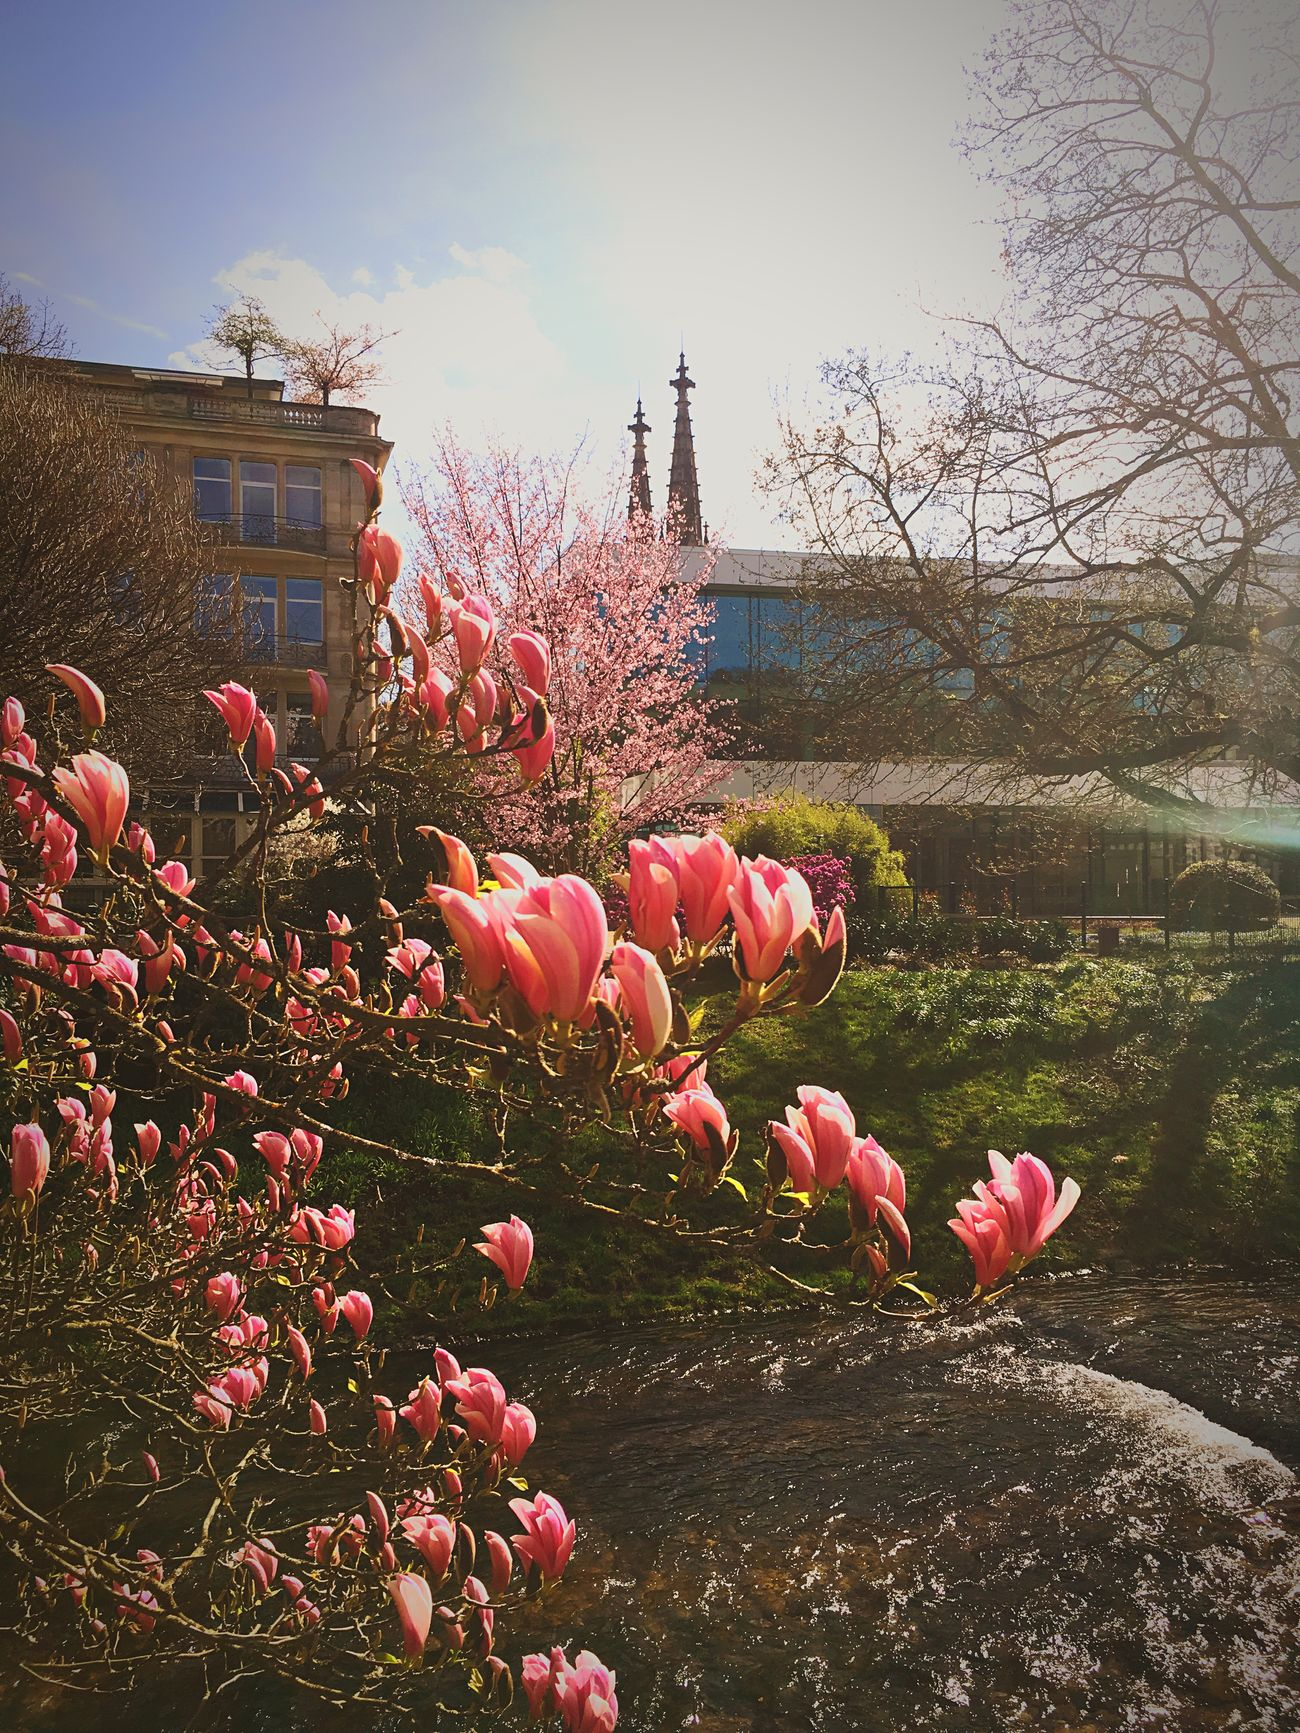 Millennial Pink Flowers, Nature And Beauty Baden Baden Germany Blooming Springtime No People Outdoors Day Freshness Fragility First Eyeem Photo Millennial Pink